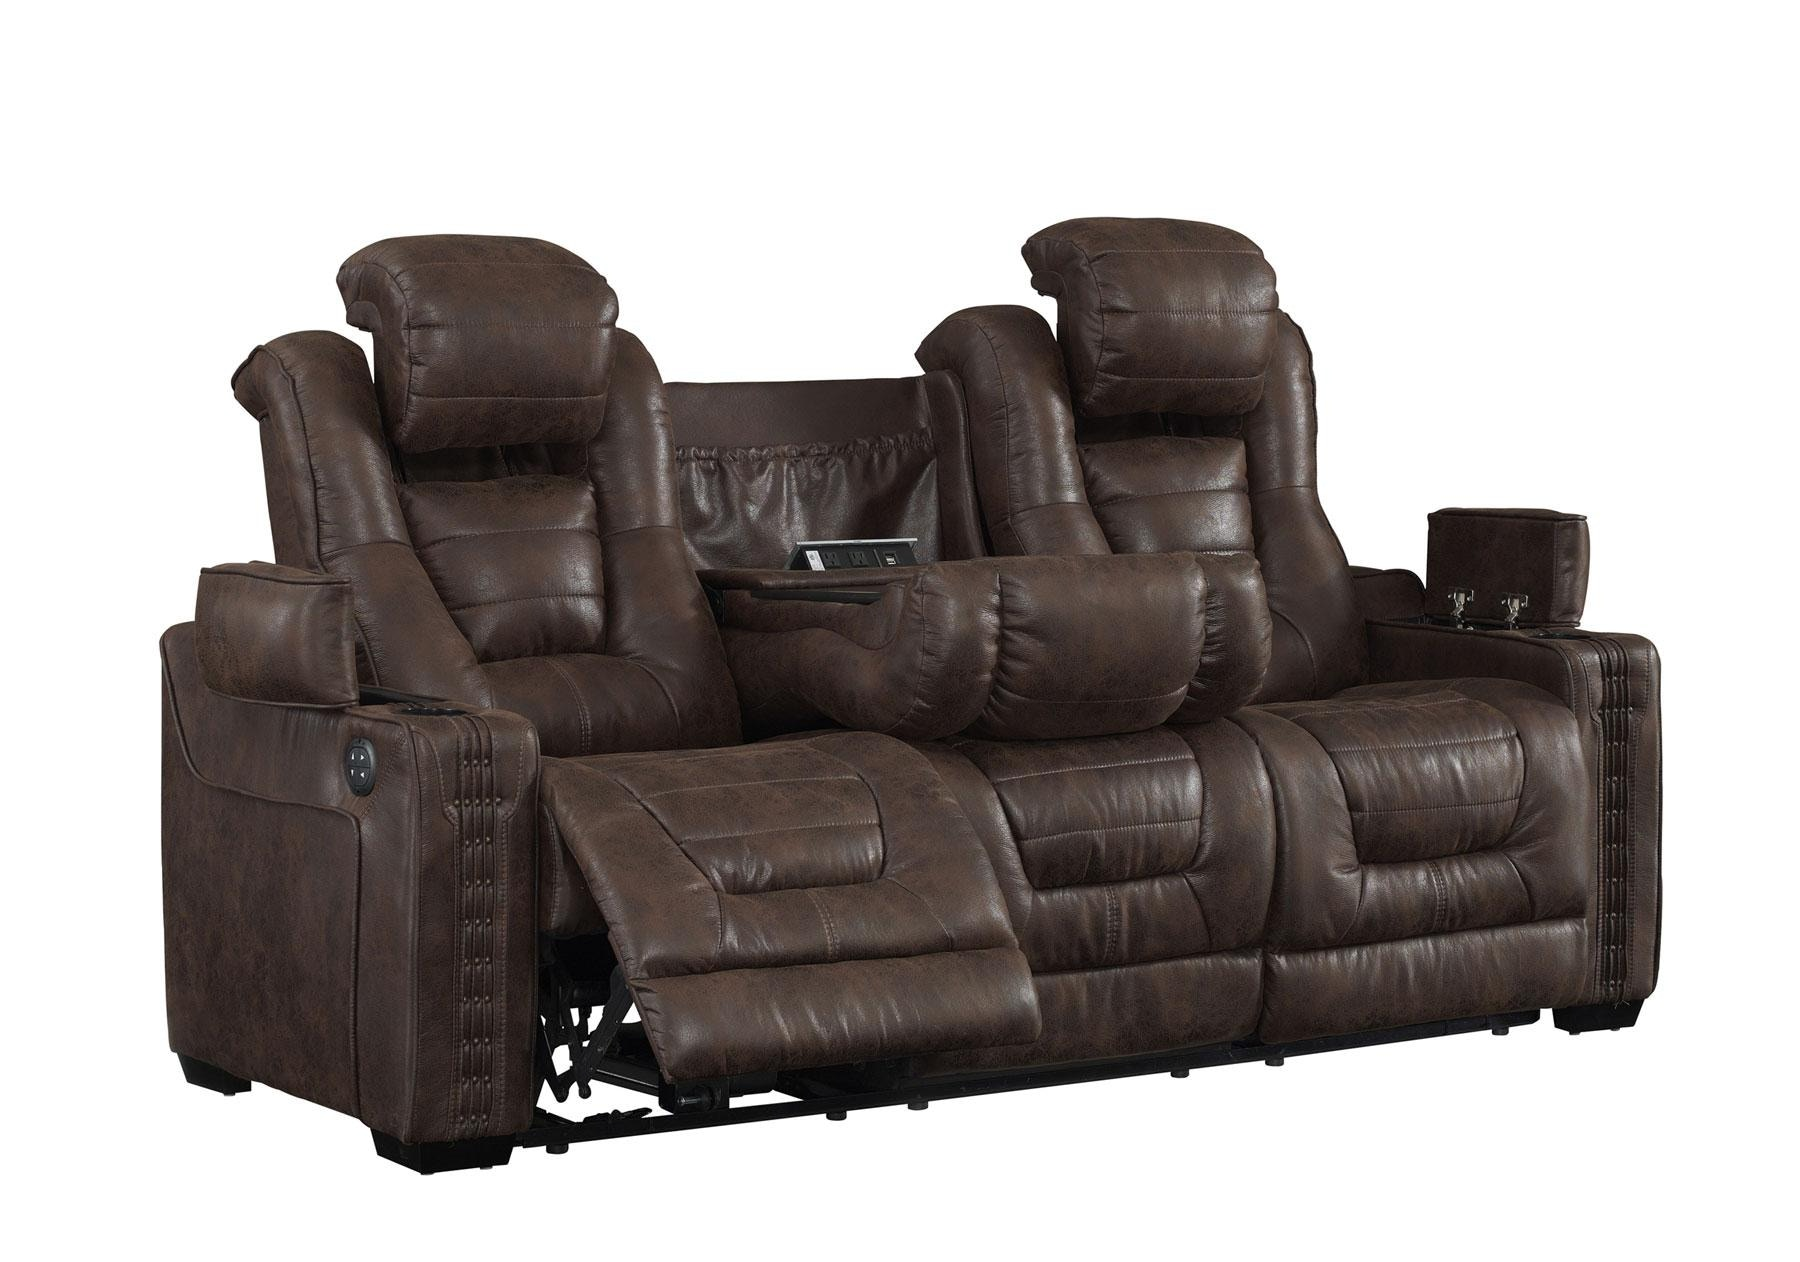 Prime Resources International Living Room Eric Church Power Motion Sofa 052718 - Furniture Fair ...